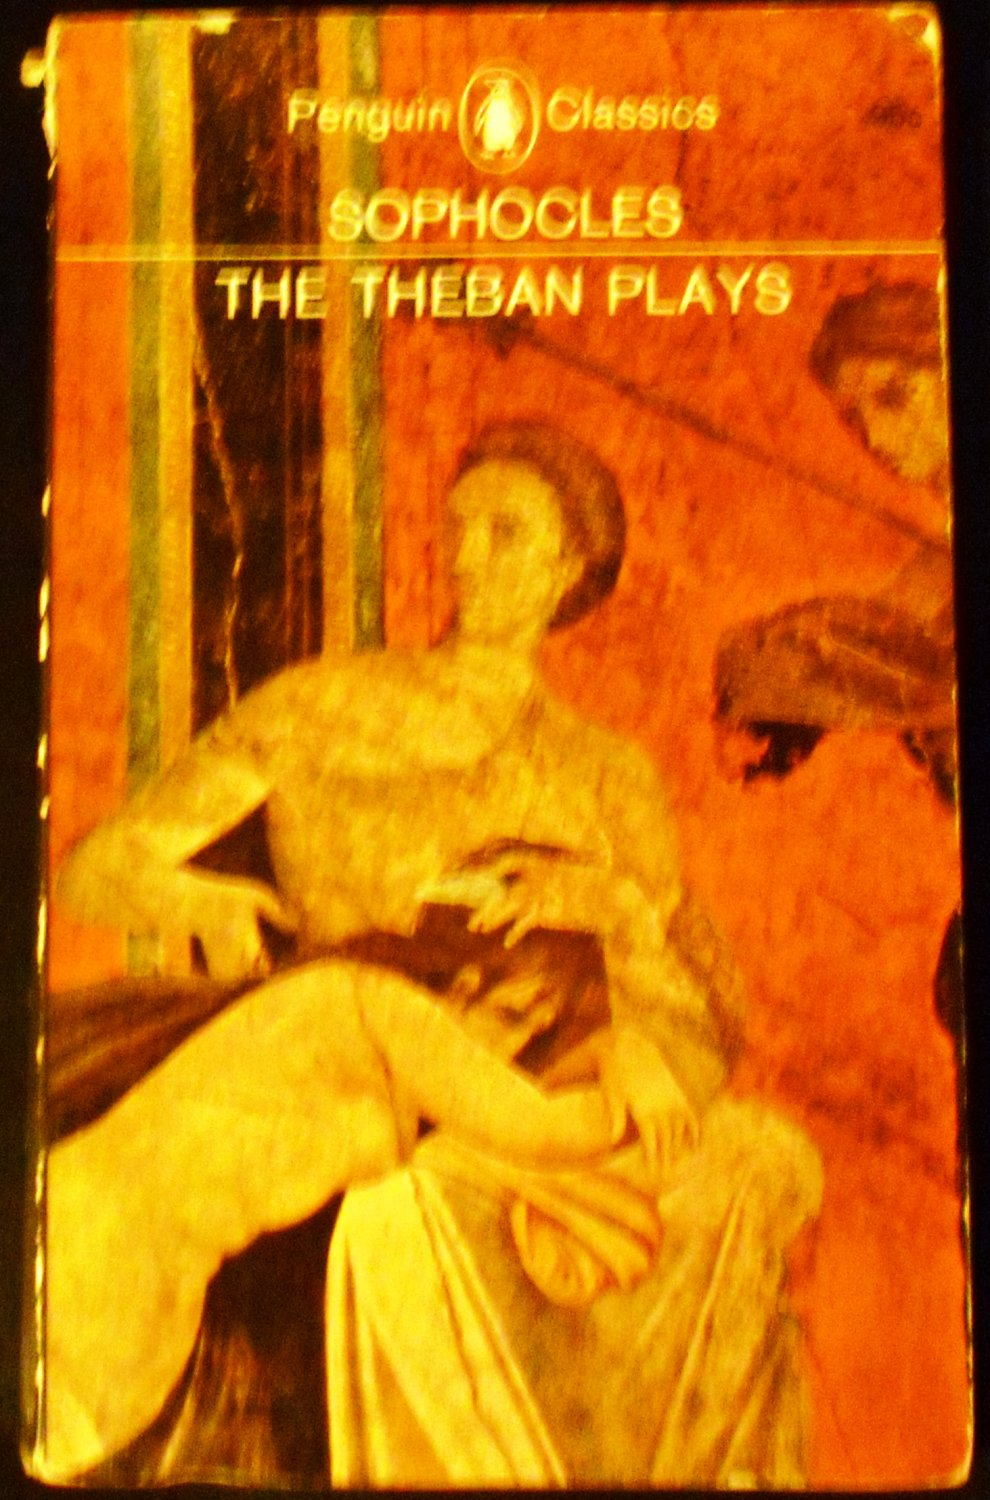 a description of the play oedipus written by sophocles The action of sophocles' play concerns oedipus' search for the murderer of laius in order to end a plague ravaging thebes, unaware that the killer he is looking for is none other than himself at the end of the play, after the truth finally comes to light, jocasta hangs herself while oedipus, horrified at his patricide and incest , proceeds to.